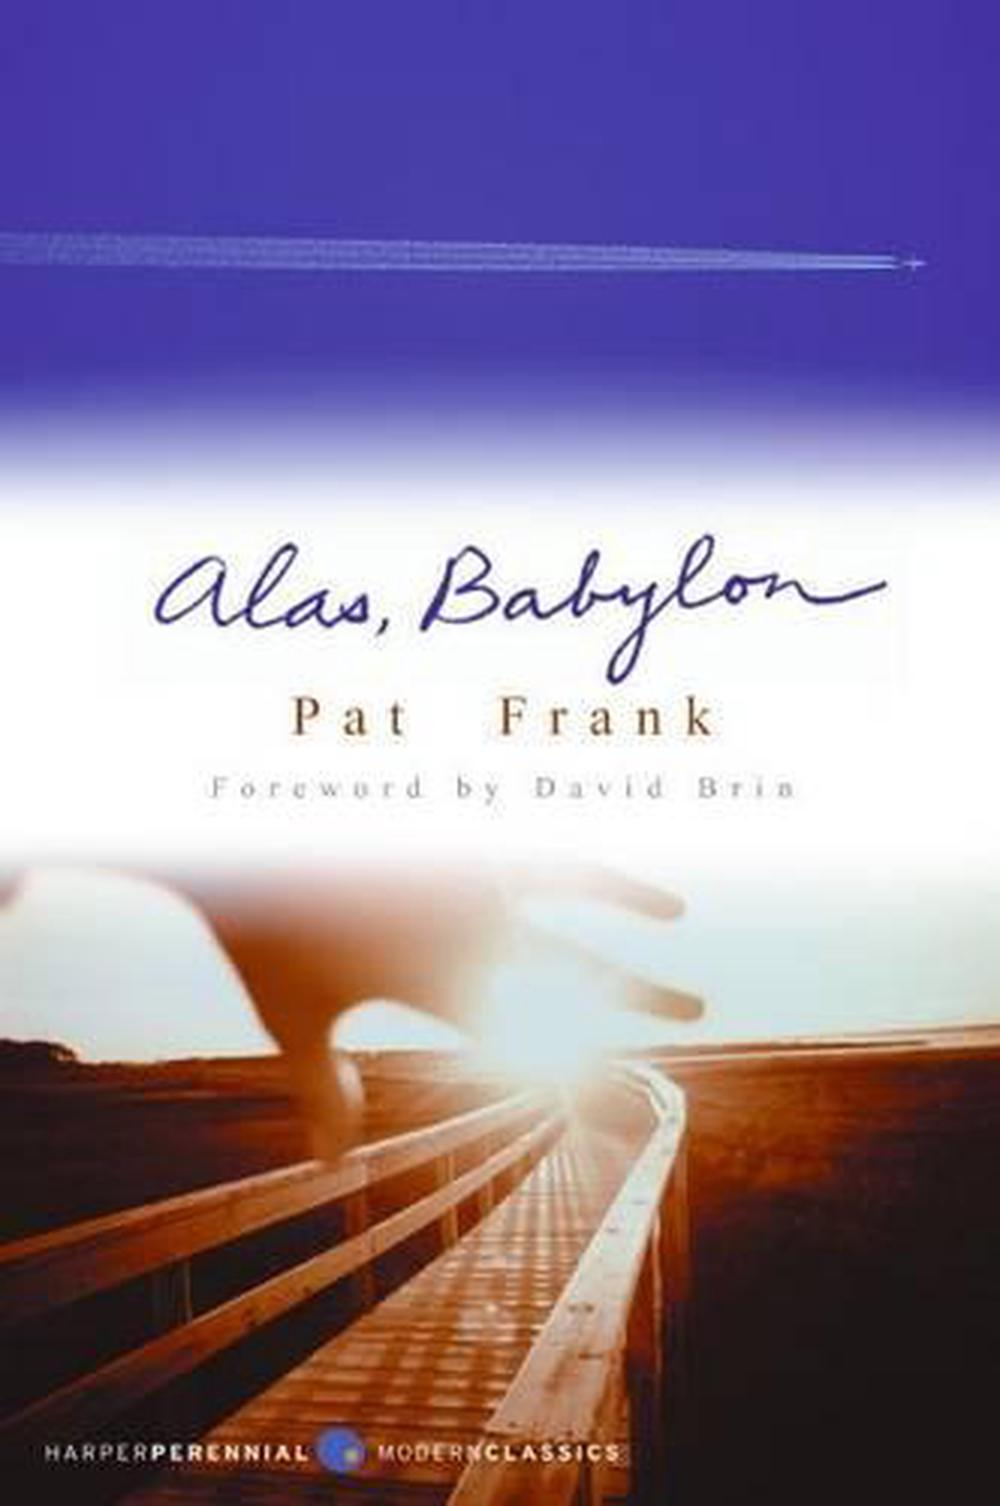 analysis of alasbabylon a 1959 novel by american author pat frank Alas, babylon is a novel by pat frank published in 1959 the subject deals with the effects of a nuclear war on a small florida town writer vivian owens believes that pat frank had intended the semi-fictional fort repose to have been based pat frank is the author of the novel, song for sarah.